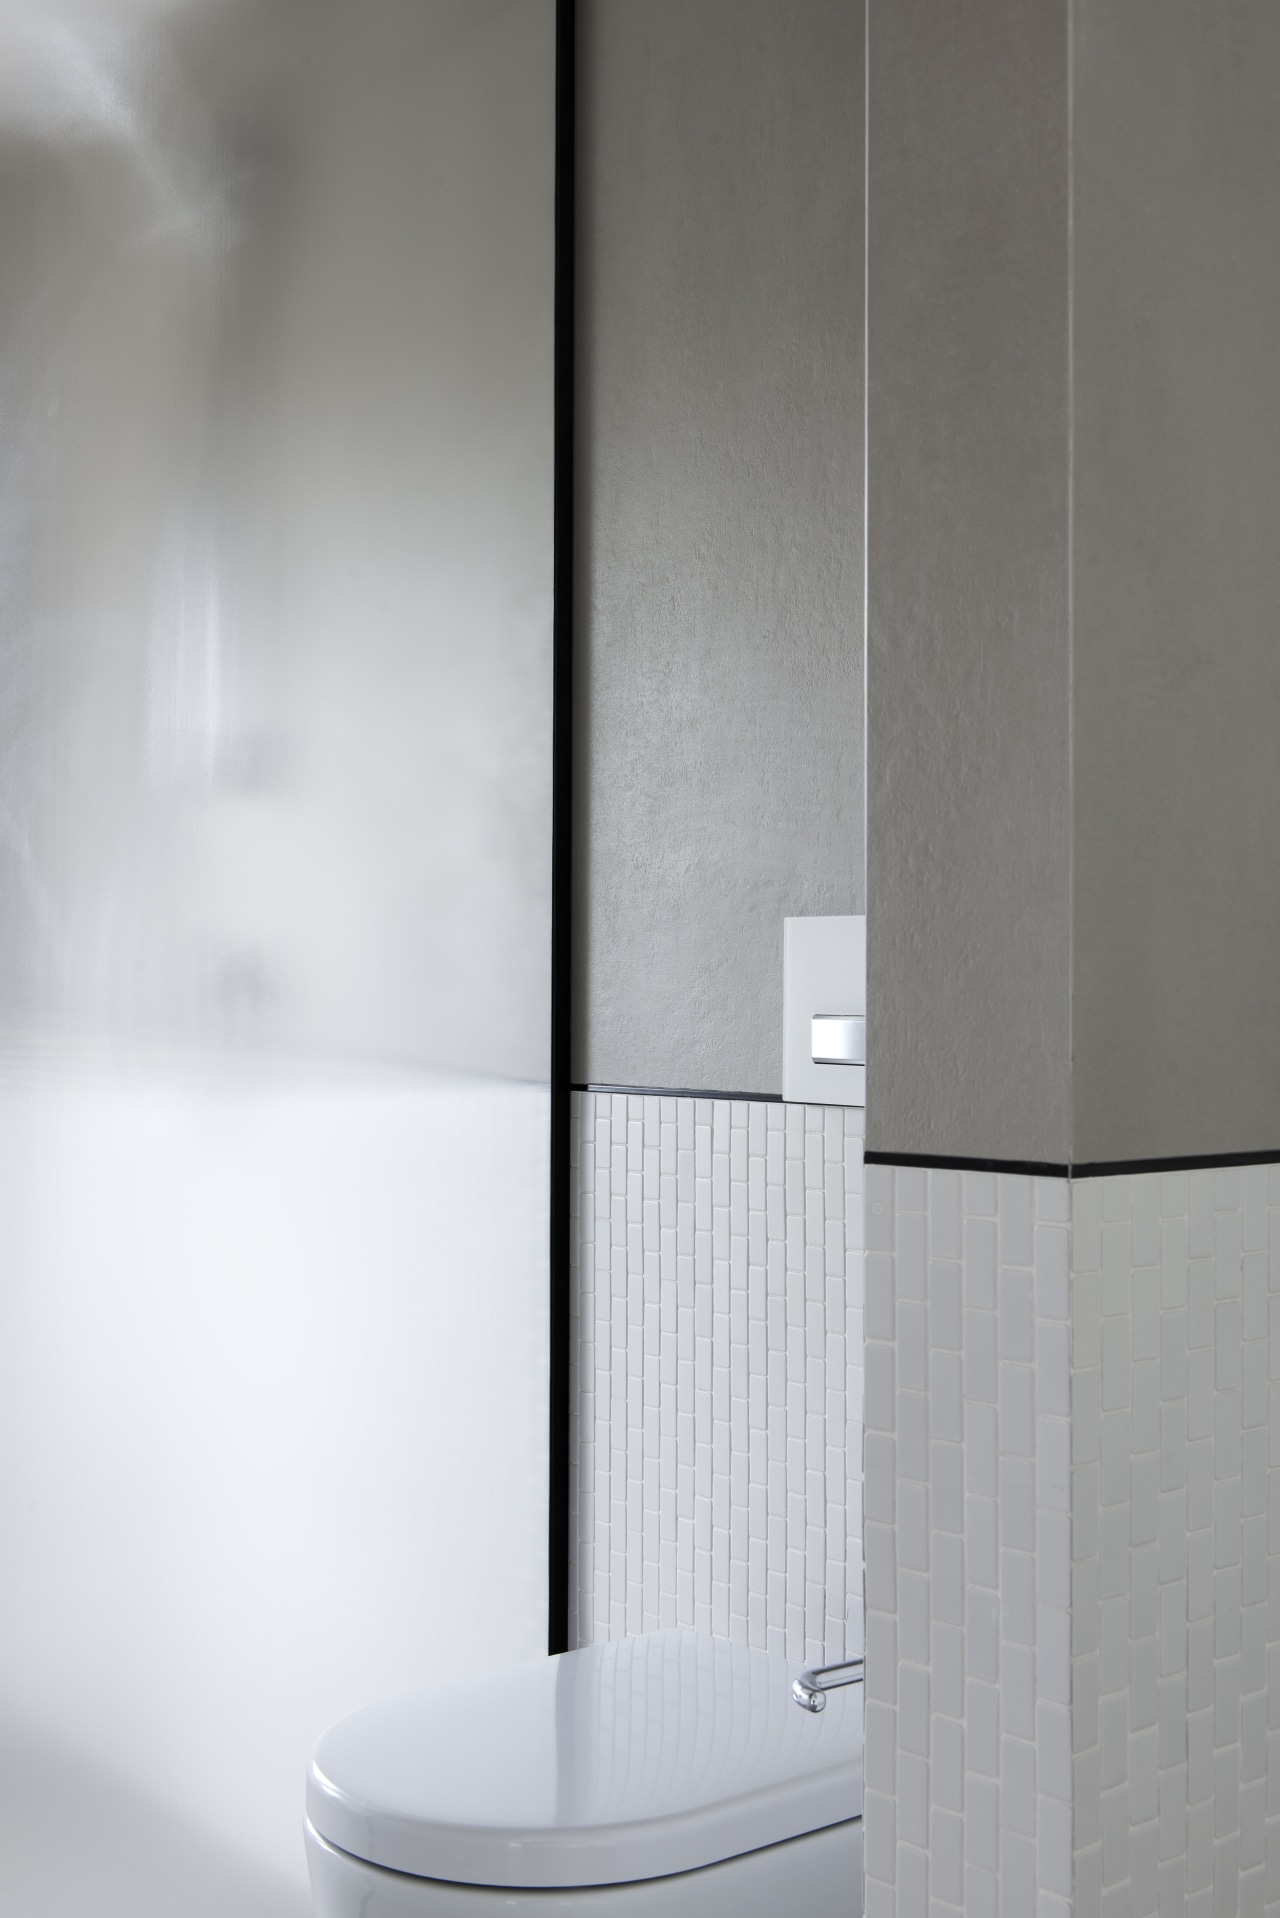 A part wall provides for a degree of gray, white